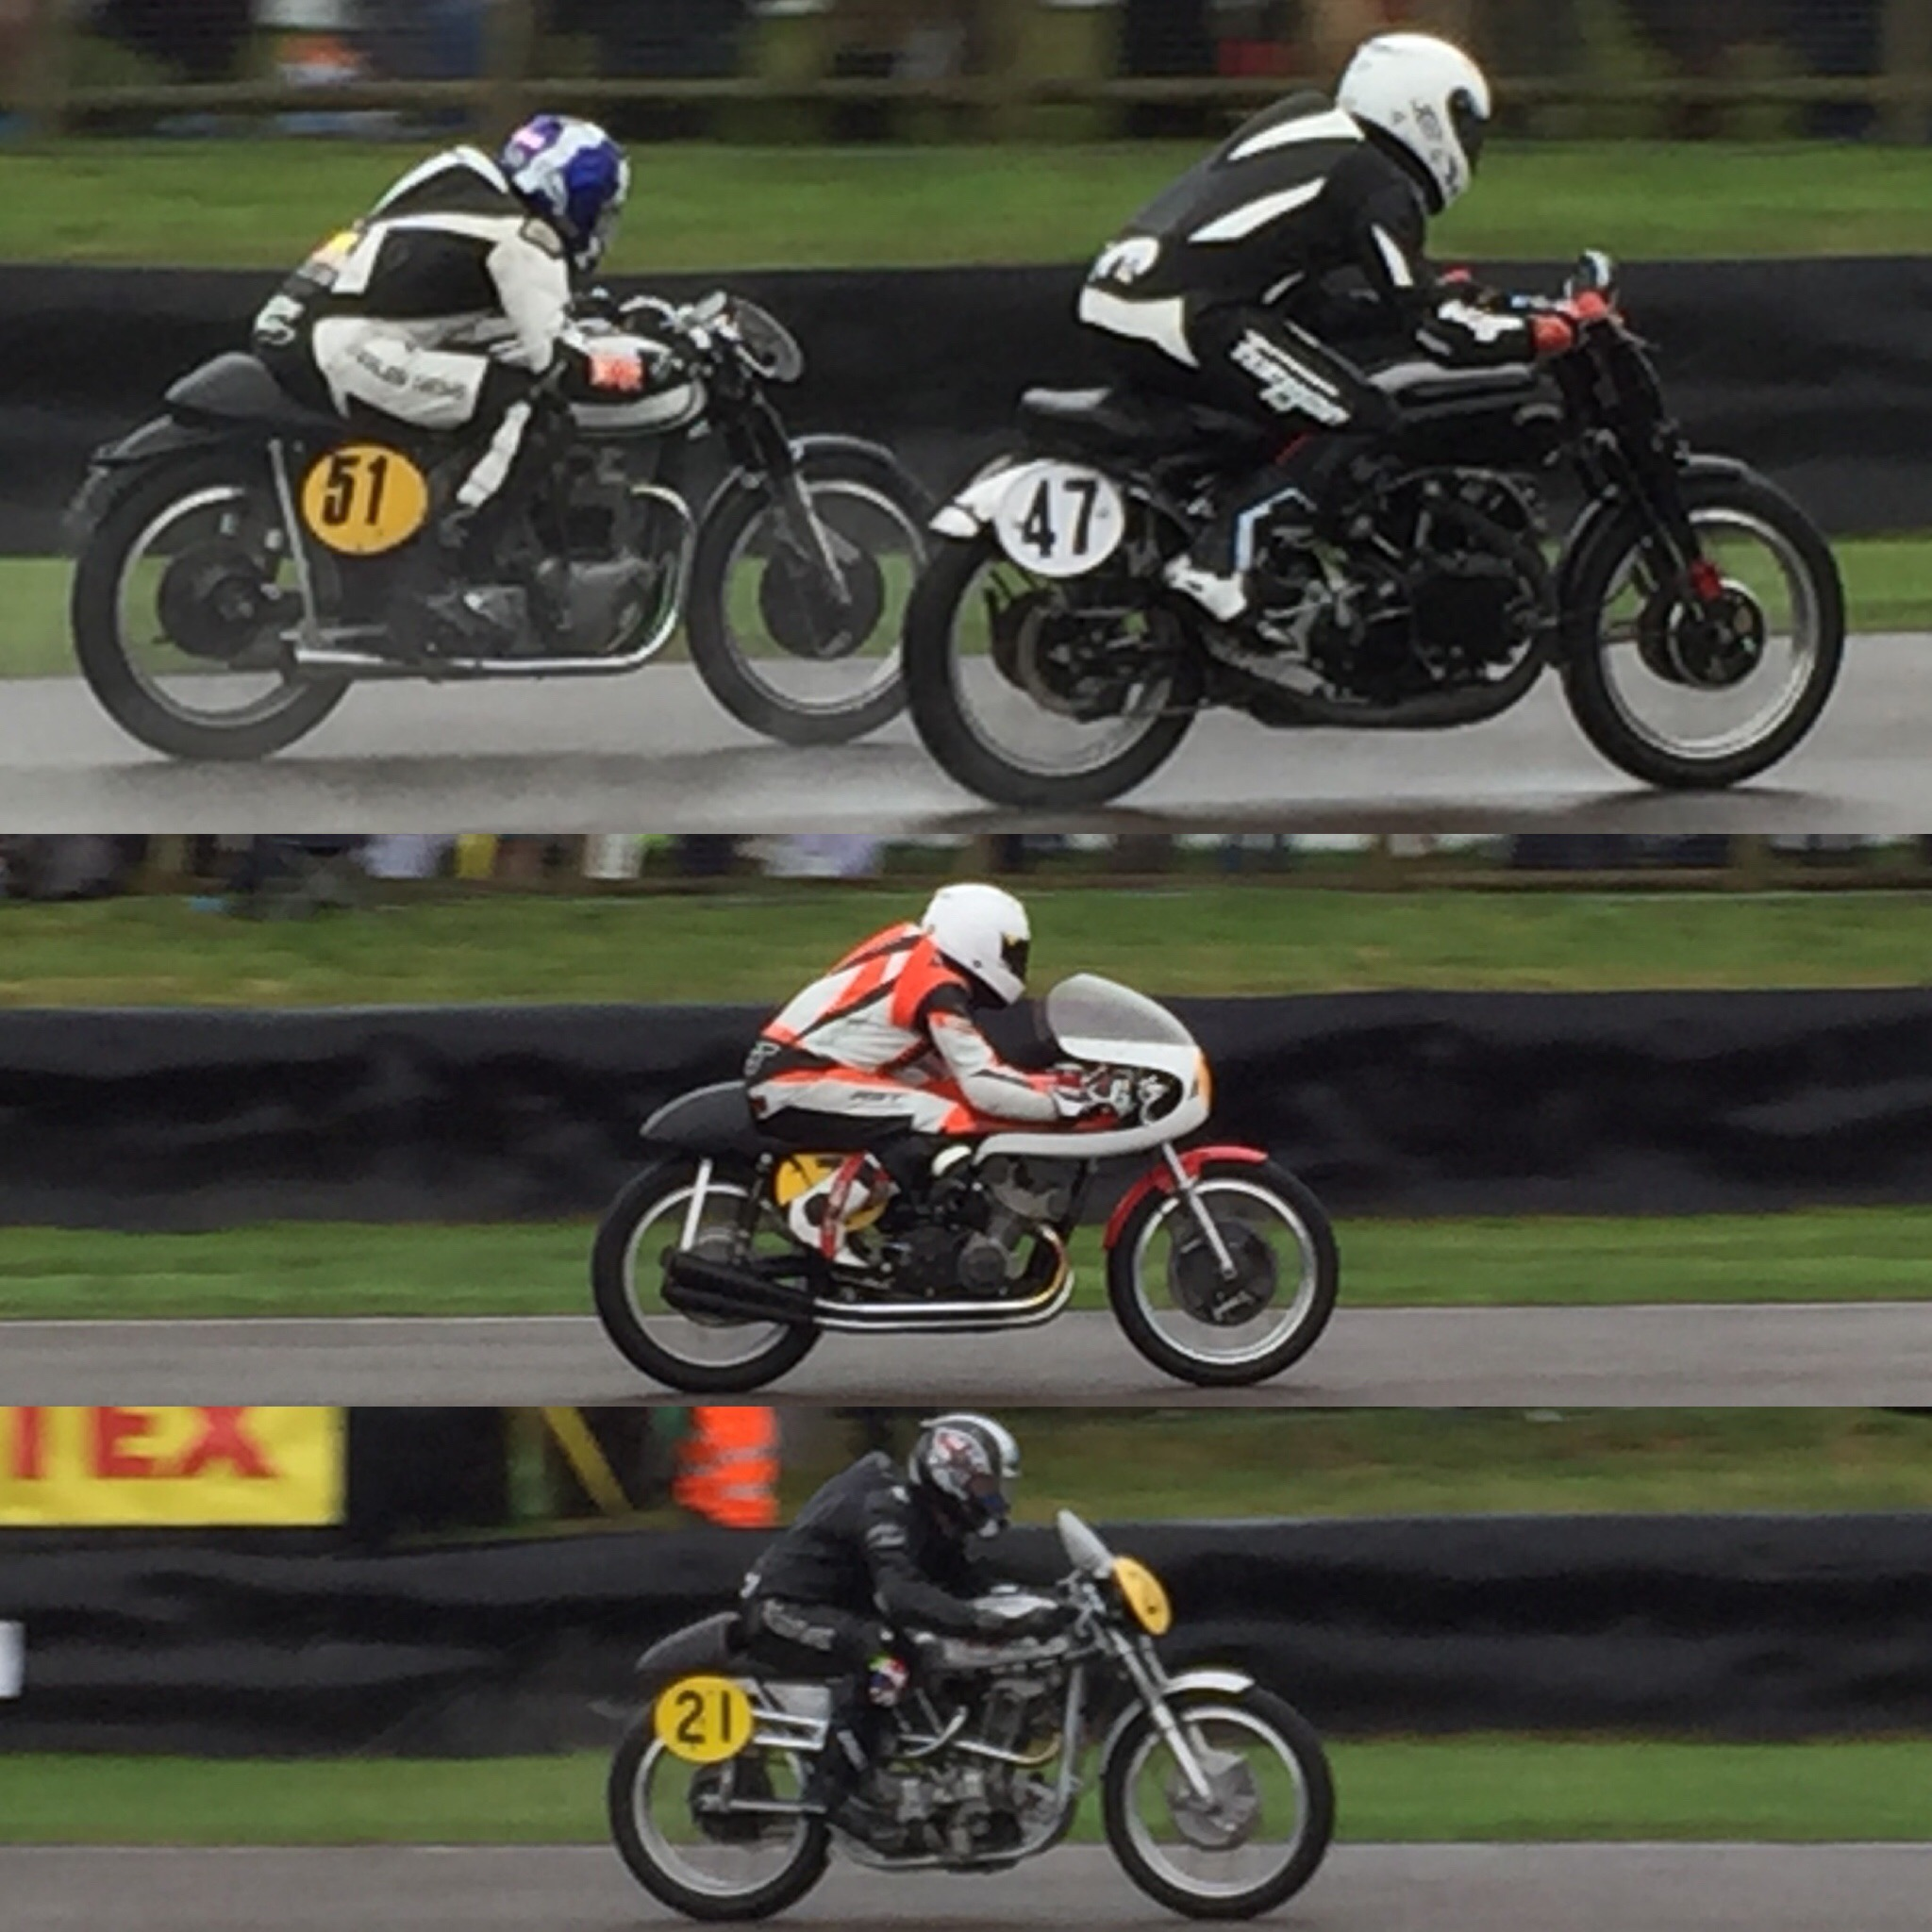 2016 Goodwood Revival Motorcycles